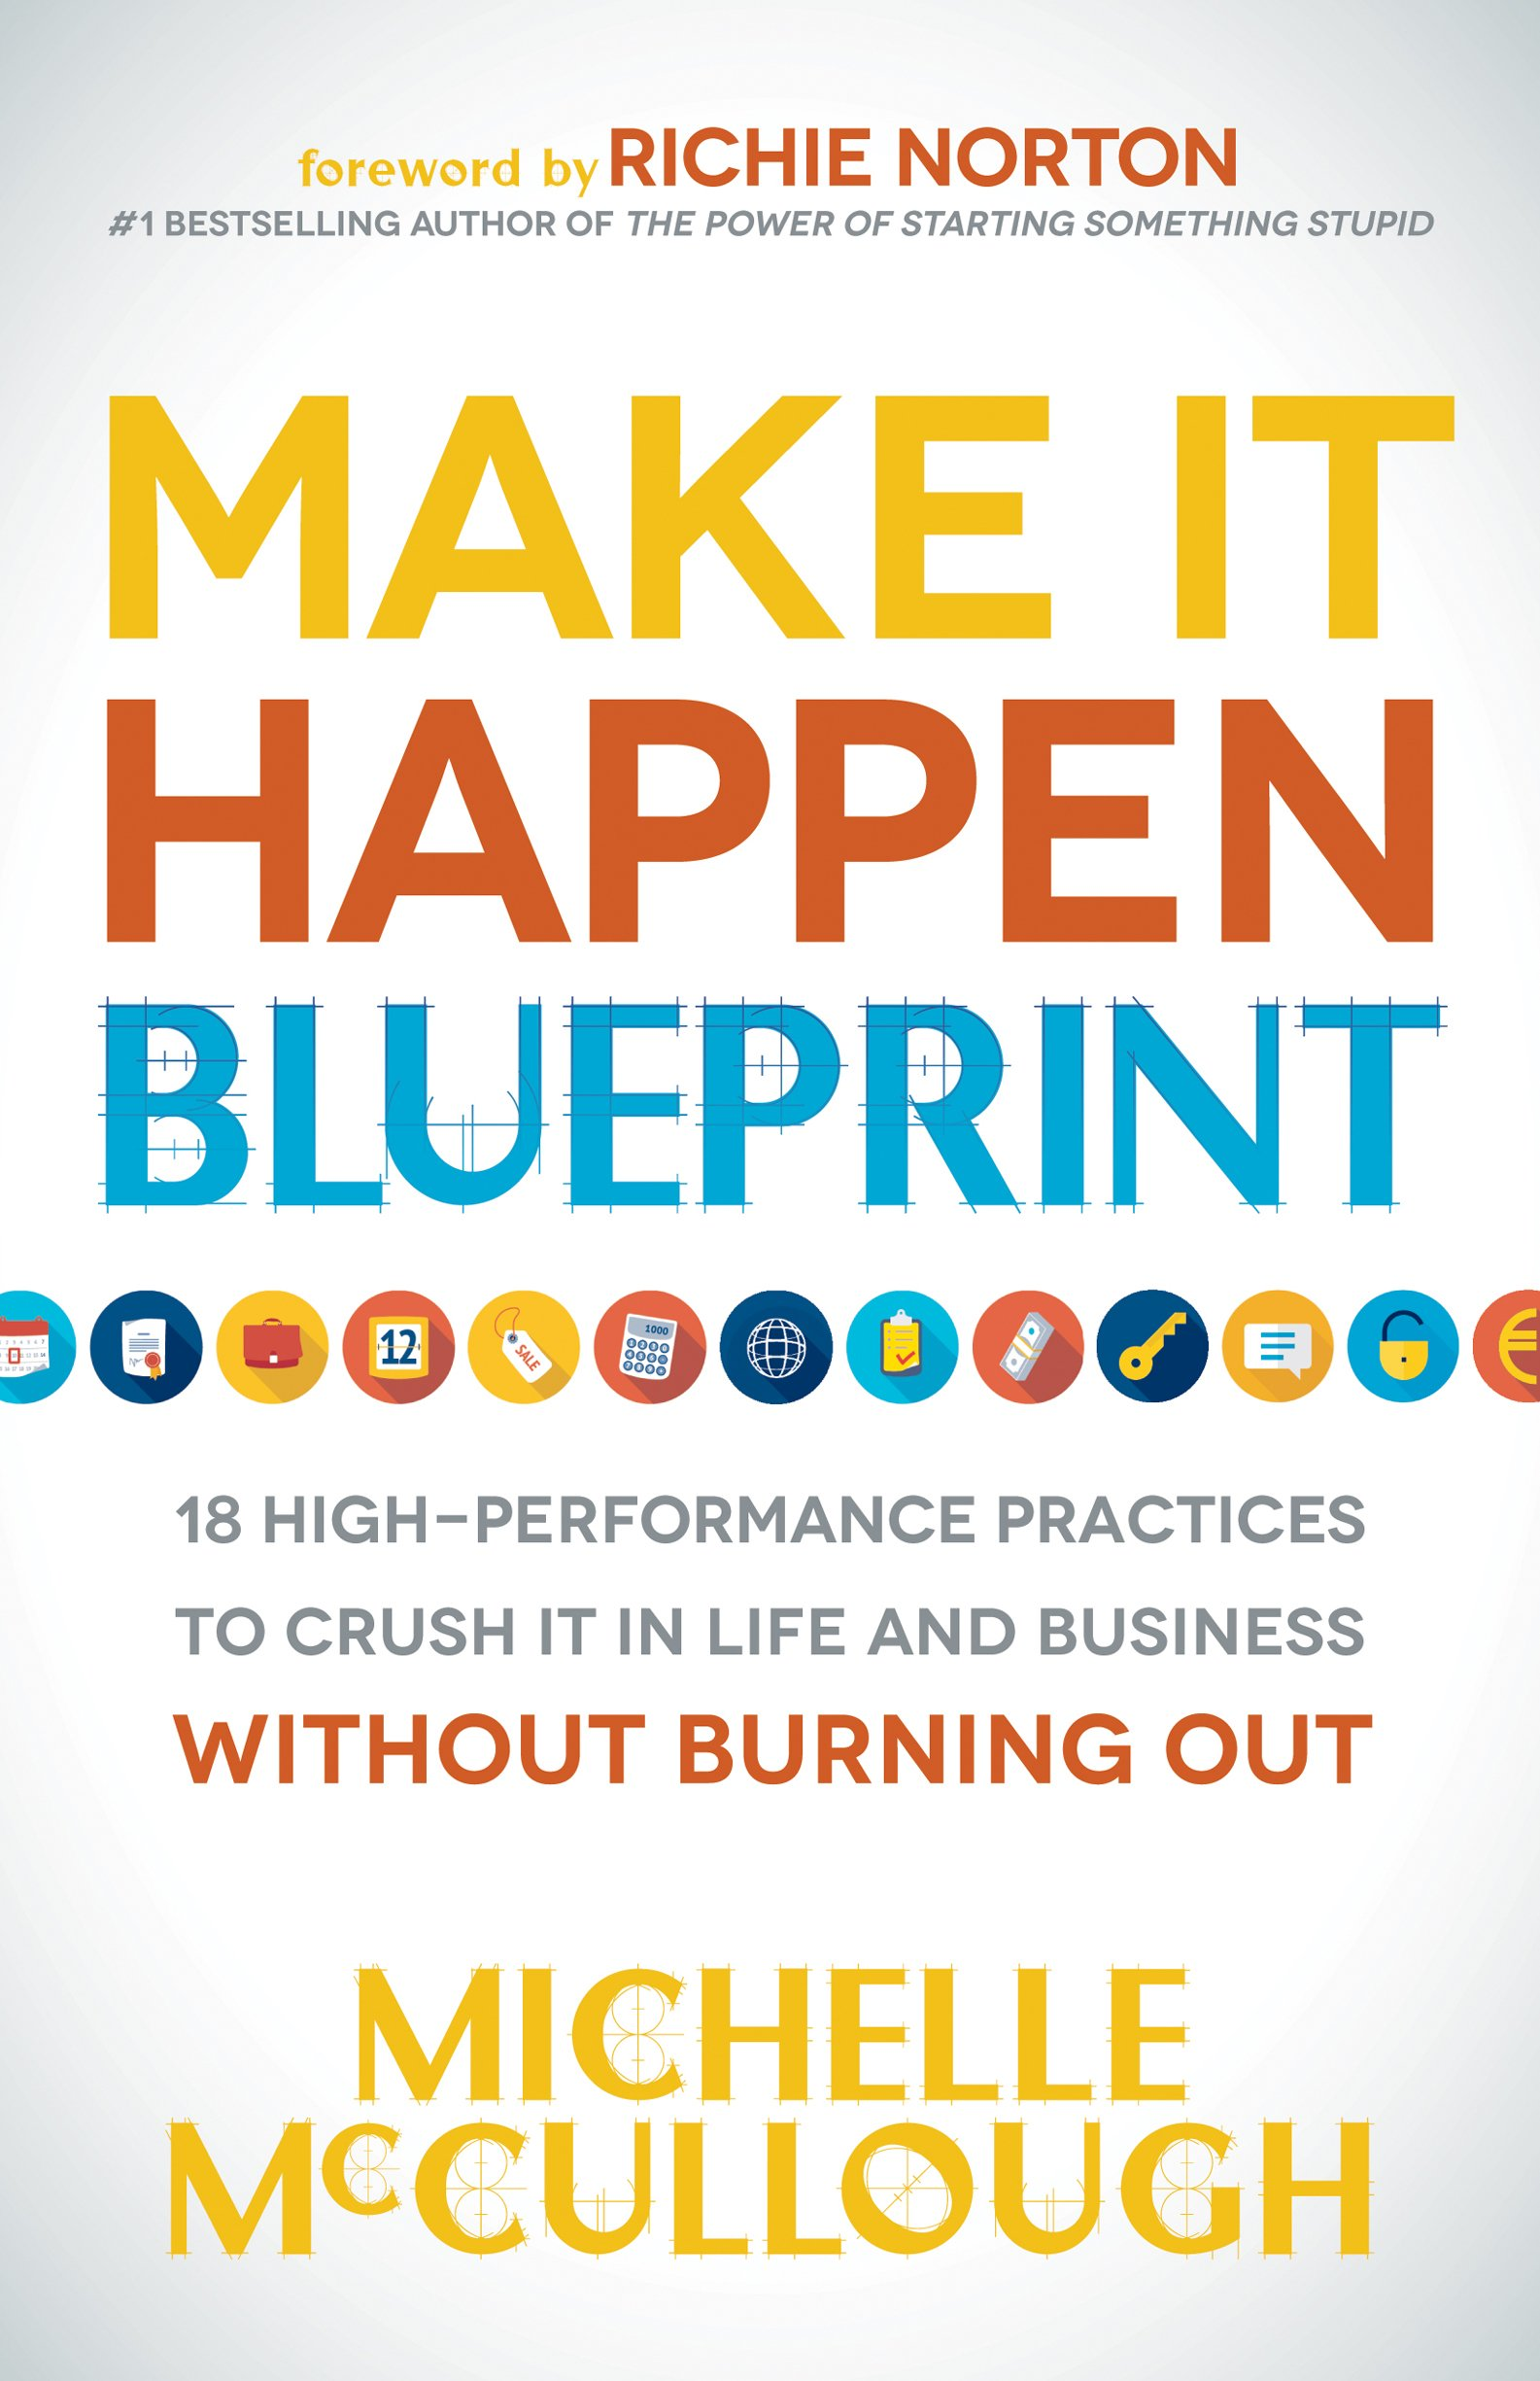 Make it happen blueprint 18 high performance practices to crush it make it happen blueprint 18 high performance practices to crush it in life and business without burning out michelle mccullough richie norton malvernweather Gallery